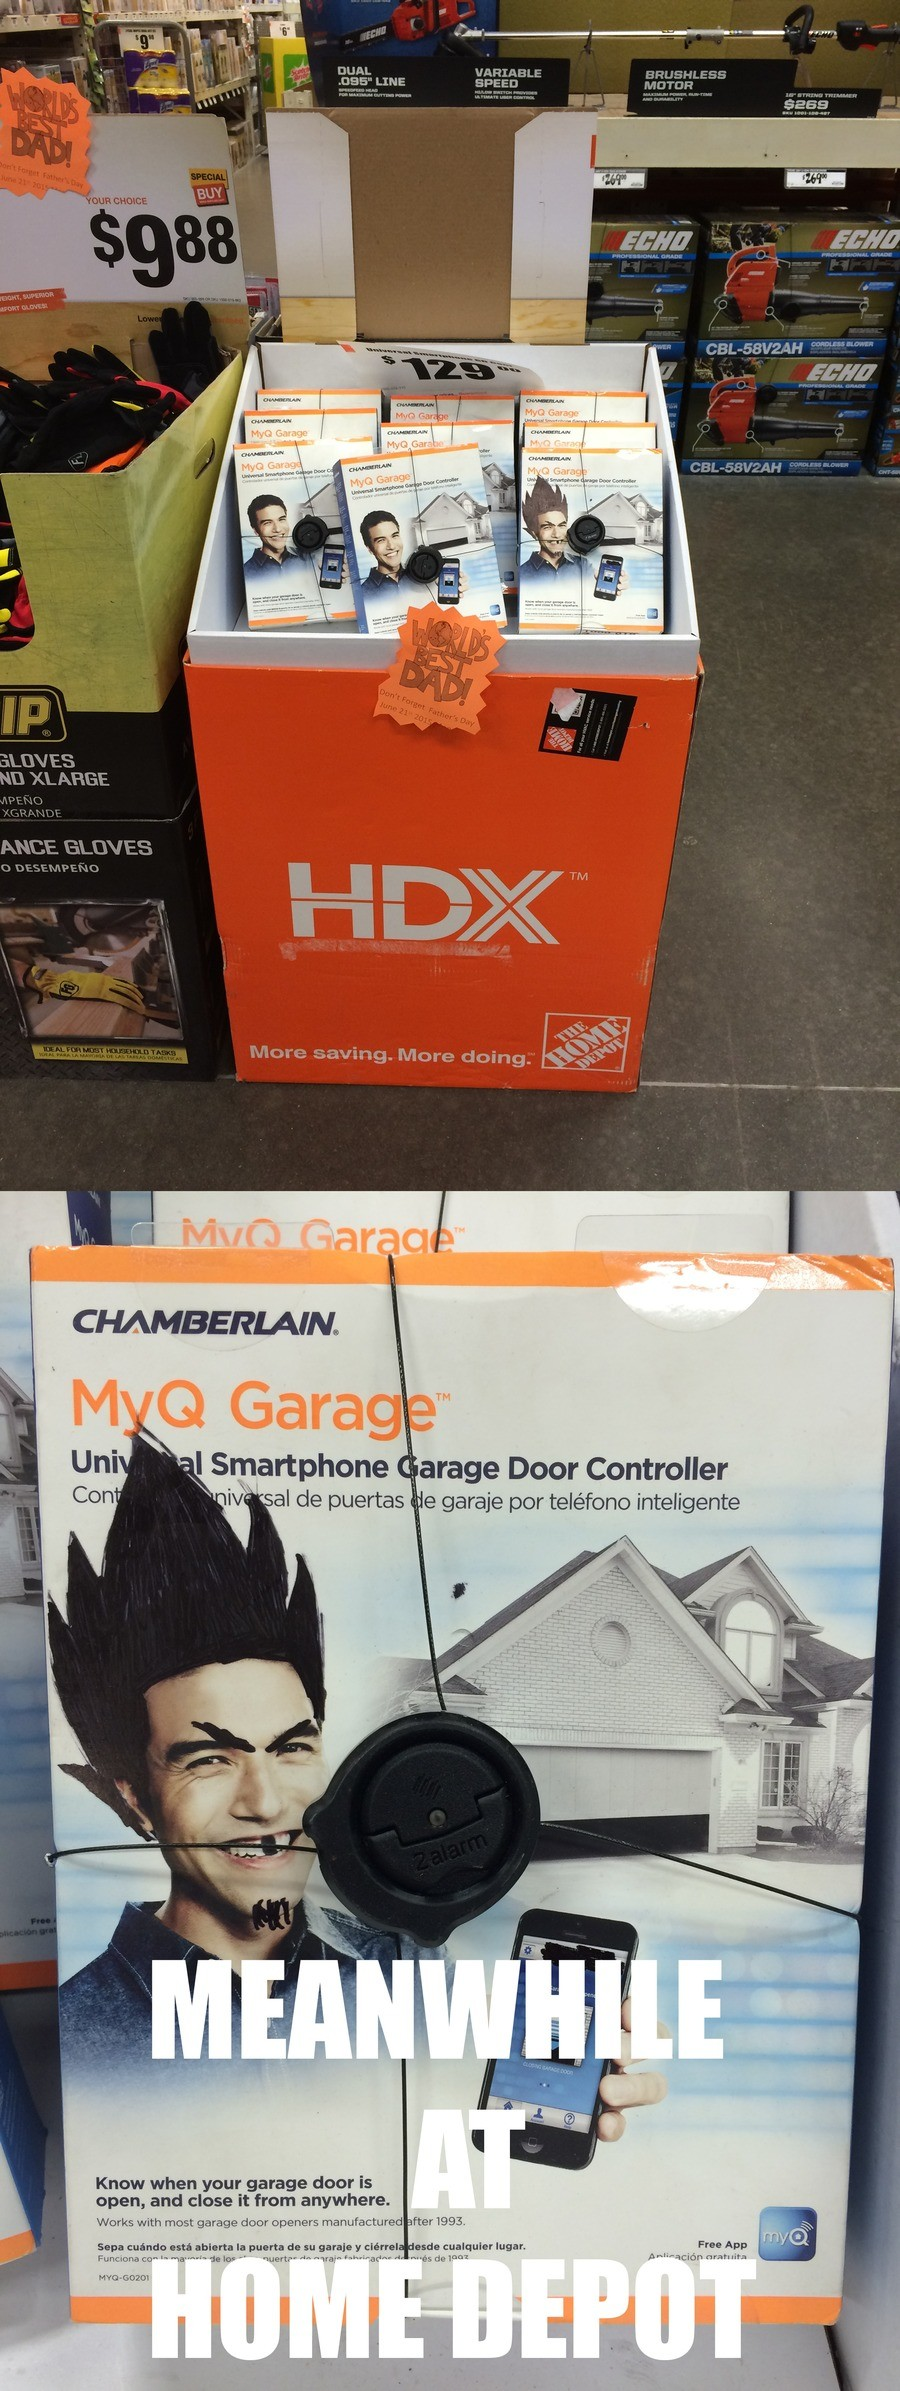 One of These is Not Like the Other. . DUAL LINE CHAMBERLAIN» m _ l, arige Door Controller Con lilt ole mates Kr?, garage pm Know when your garage door is open,